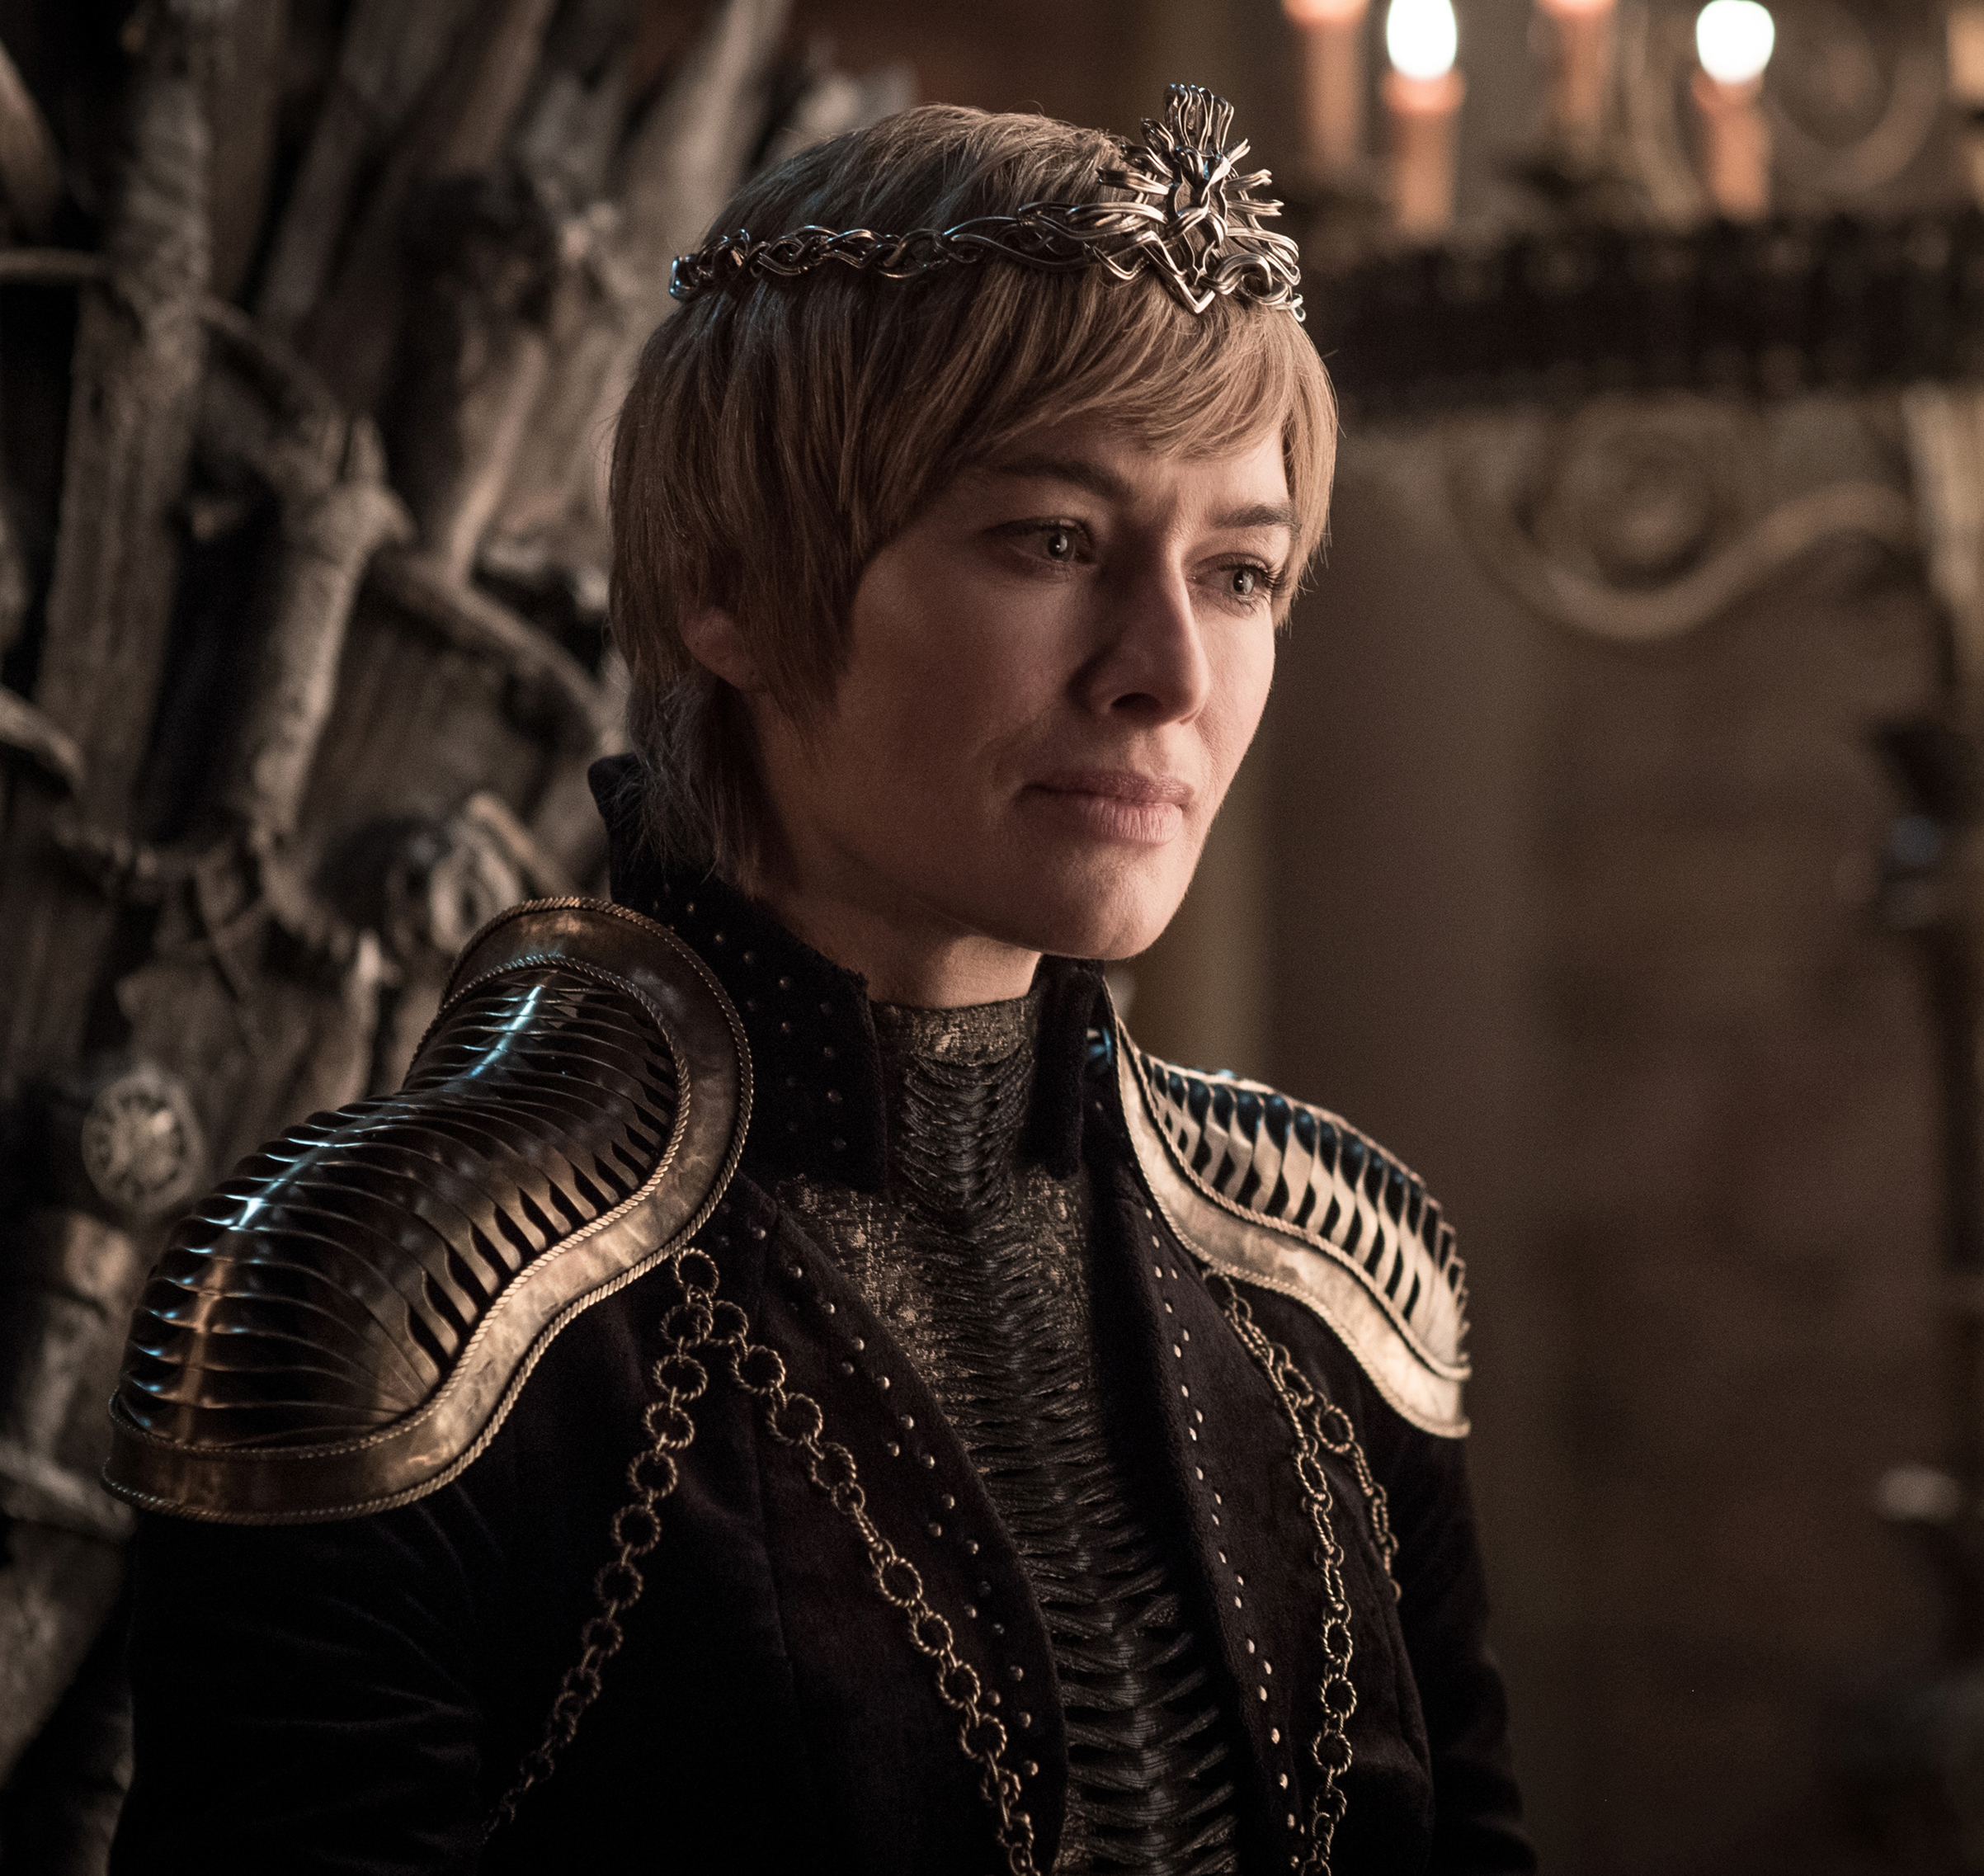 Lena Headey as Cersei Lannister